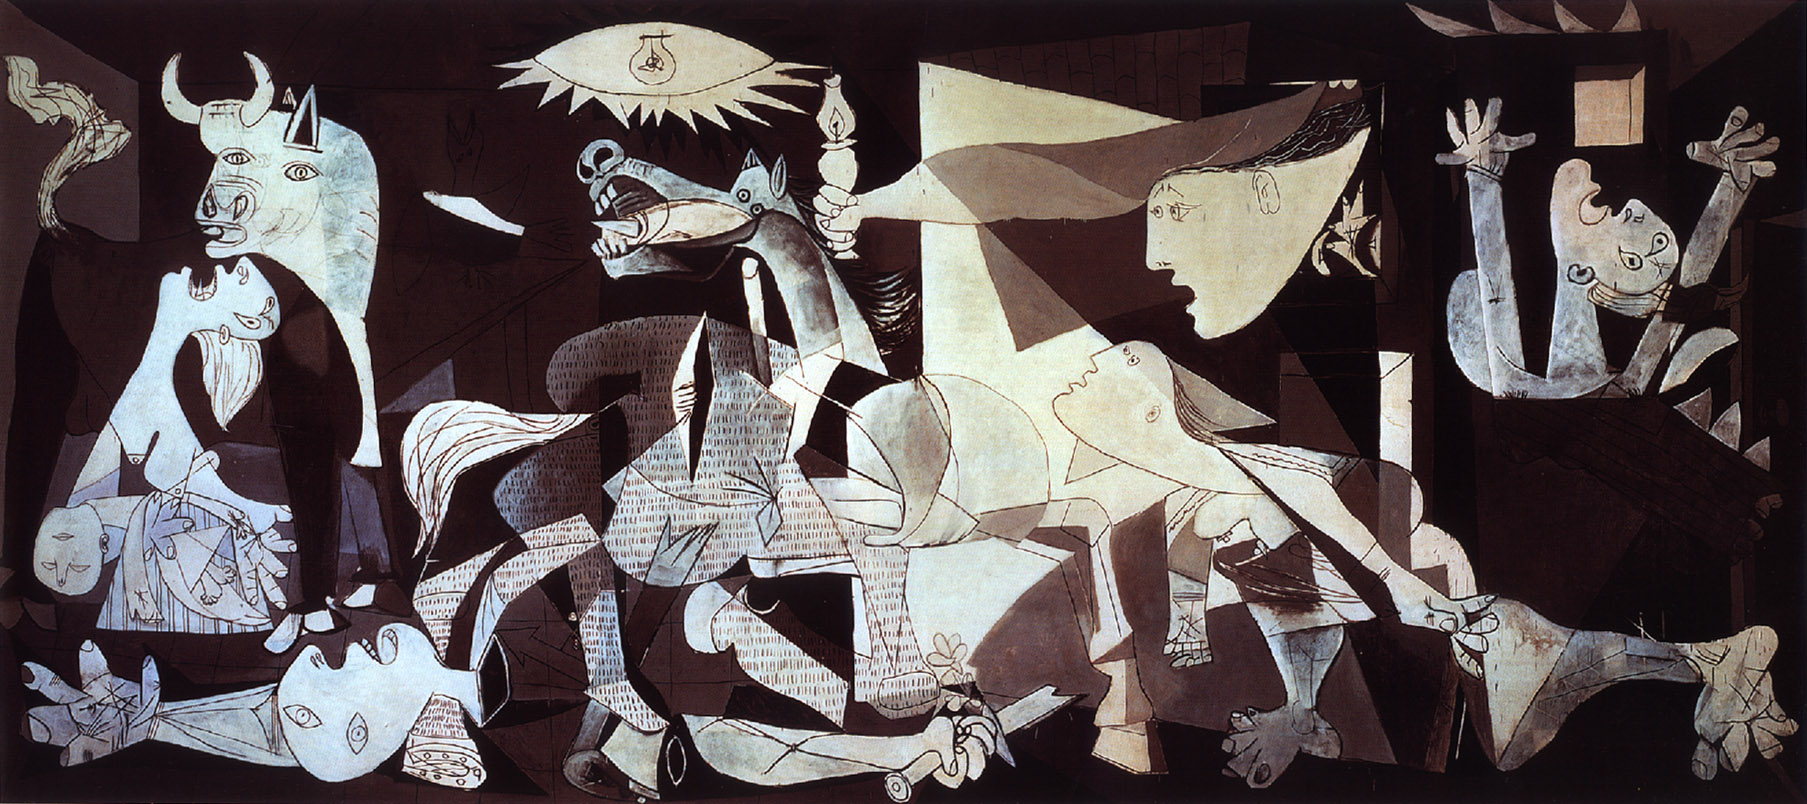 http://barcelonaaaaa.files.wordpress.com/2009/02/picasso_guernica2.jpg